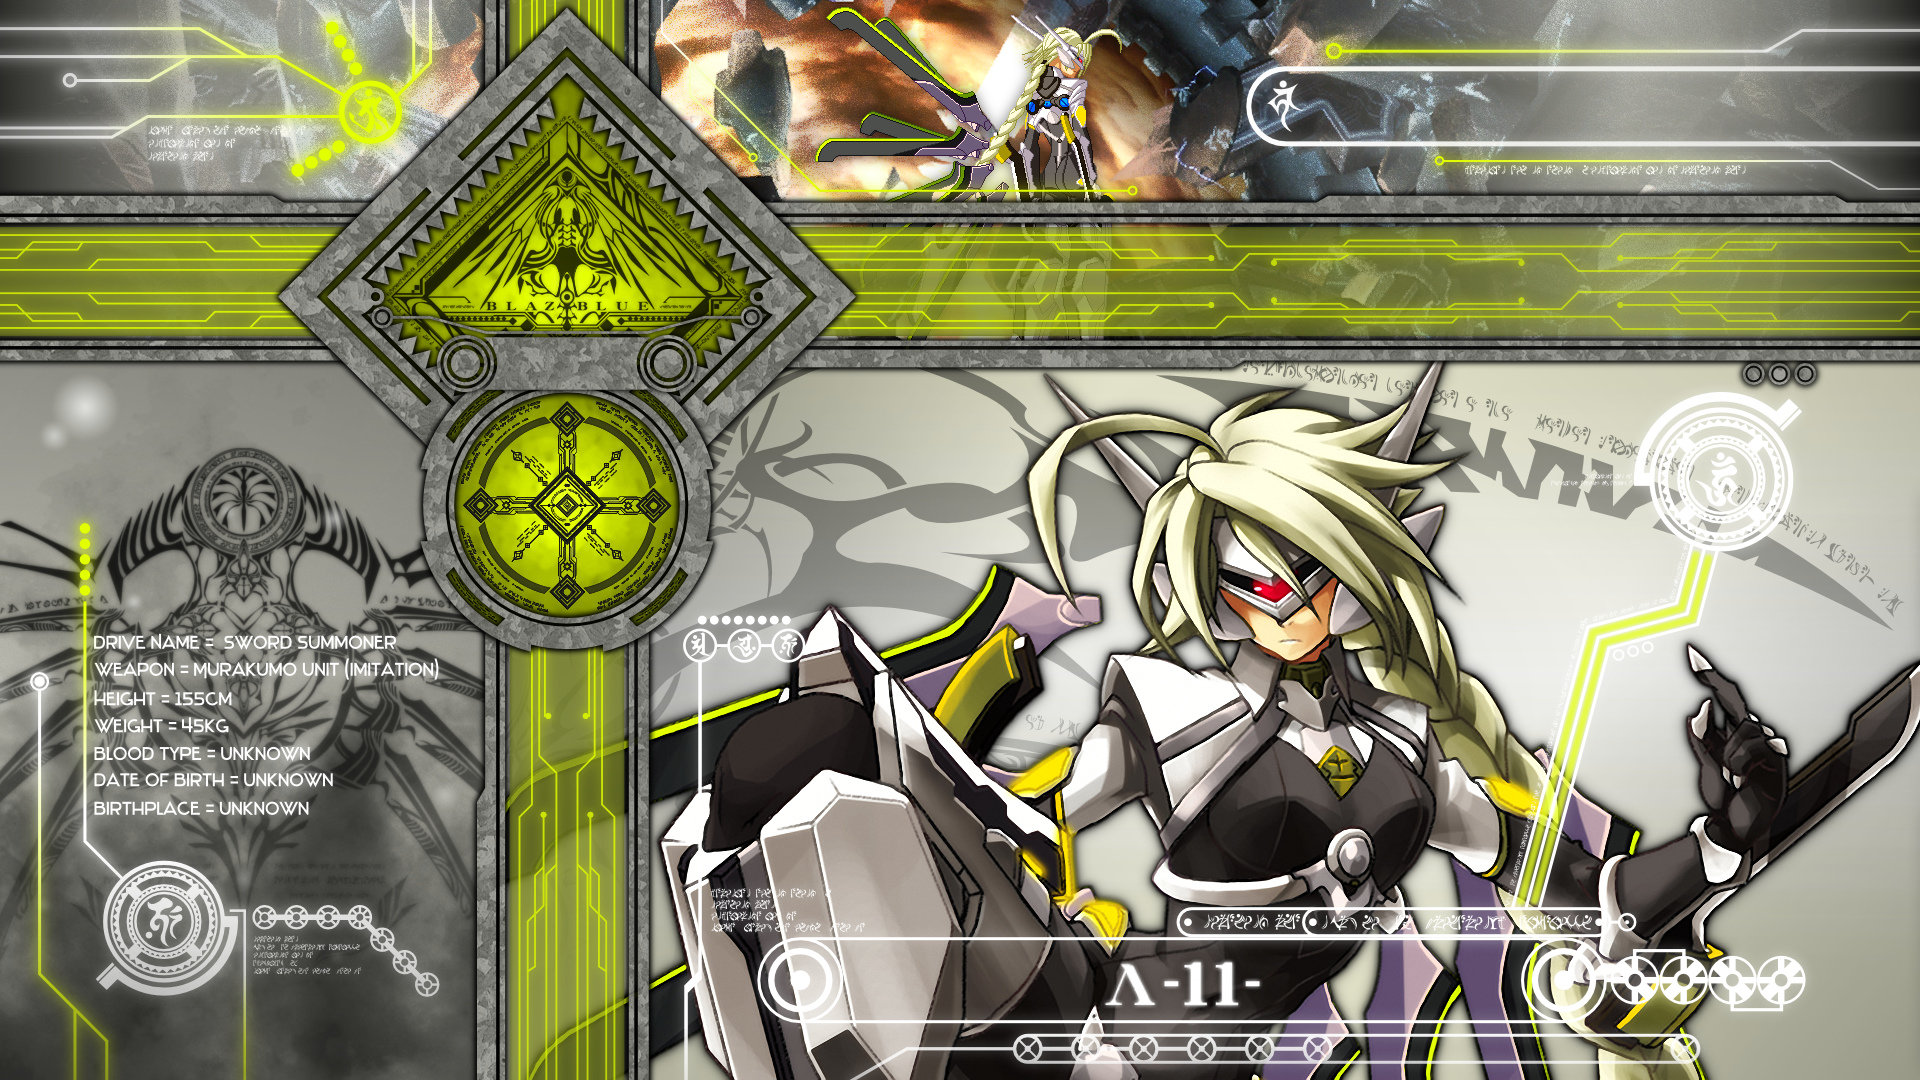 Awesome Blazblue free wallpaper ID:75103 for full hd 1920x1080 computer